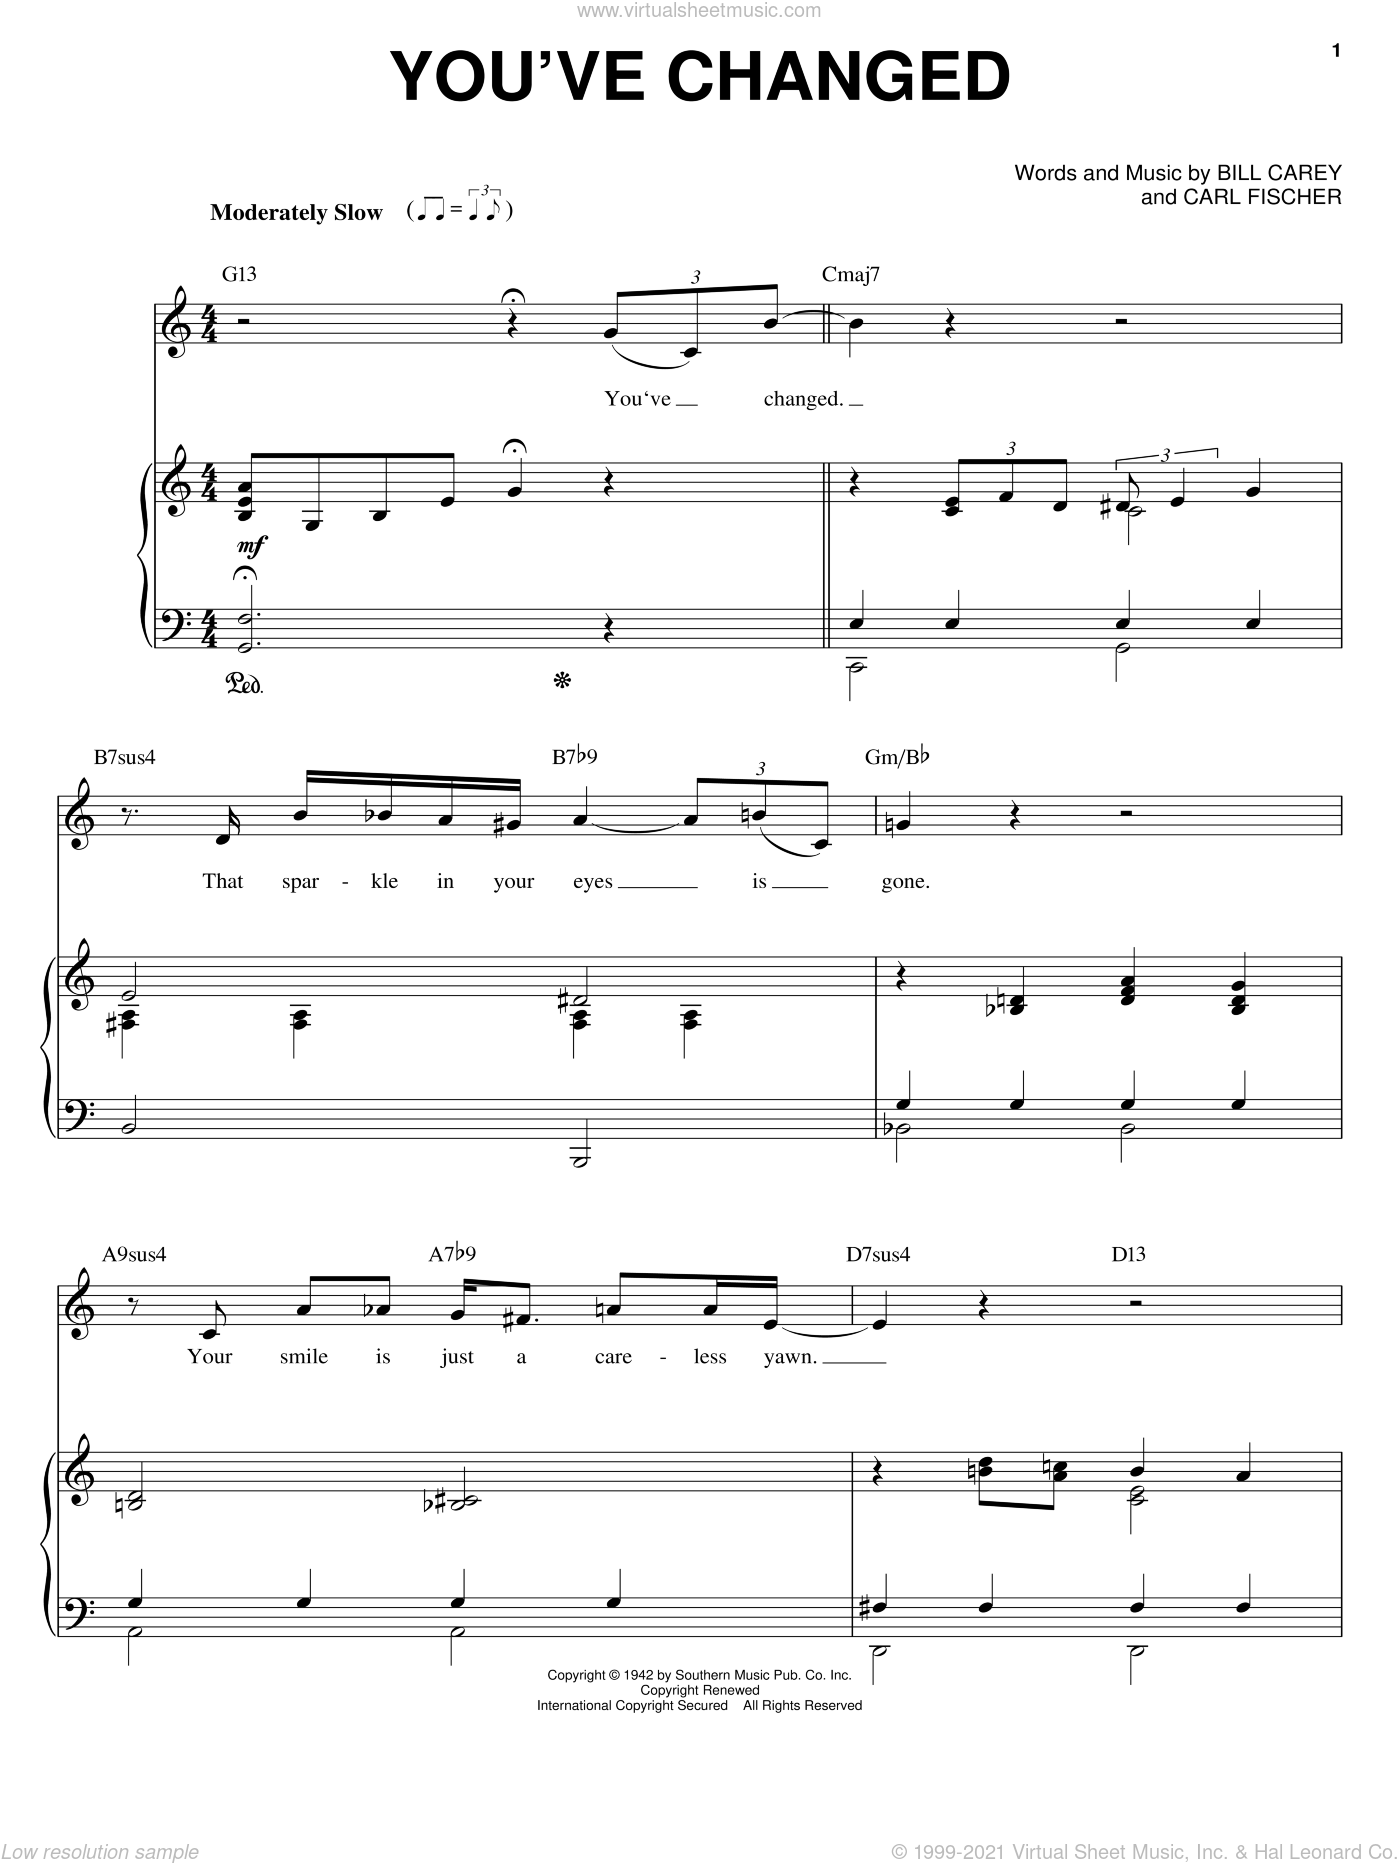 You've Changed sheet music for voice and piano by Connie Russell, Bill Carey and Carl Fischer, intermediate skill level